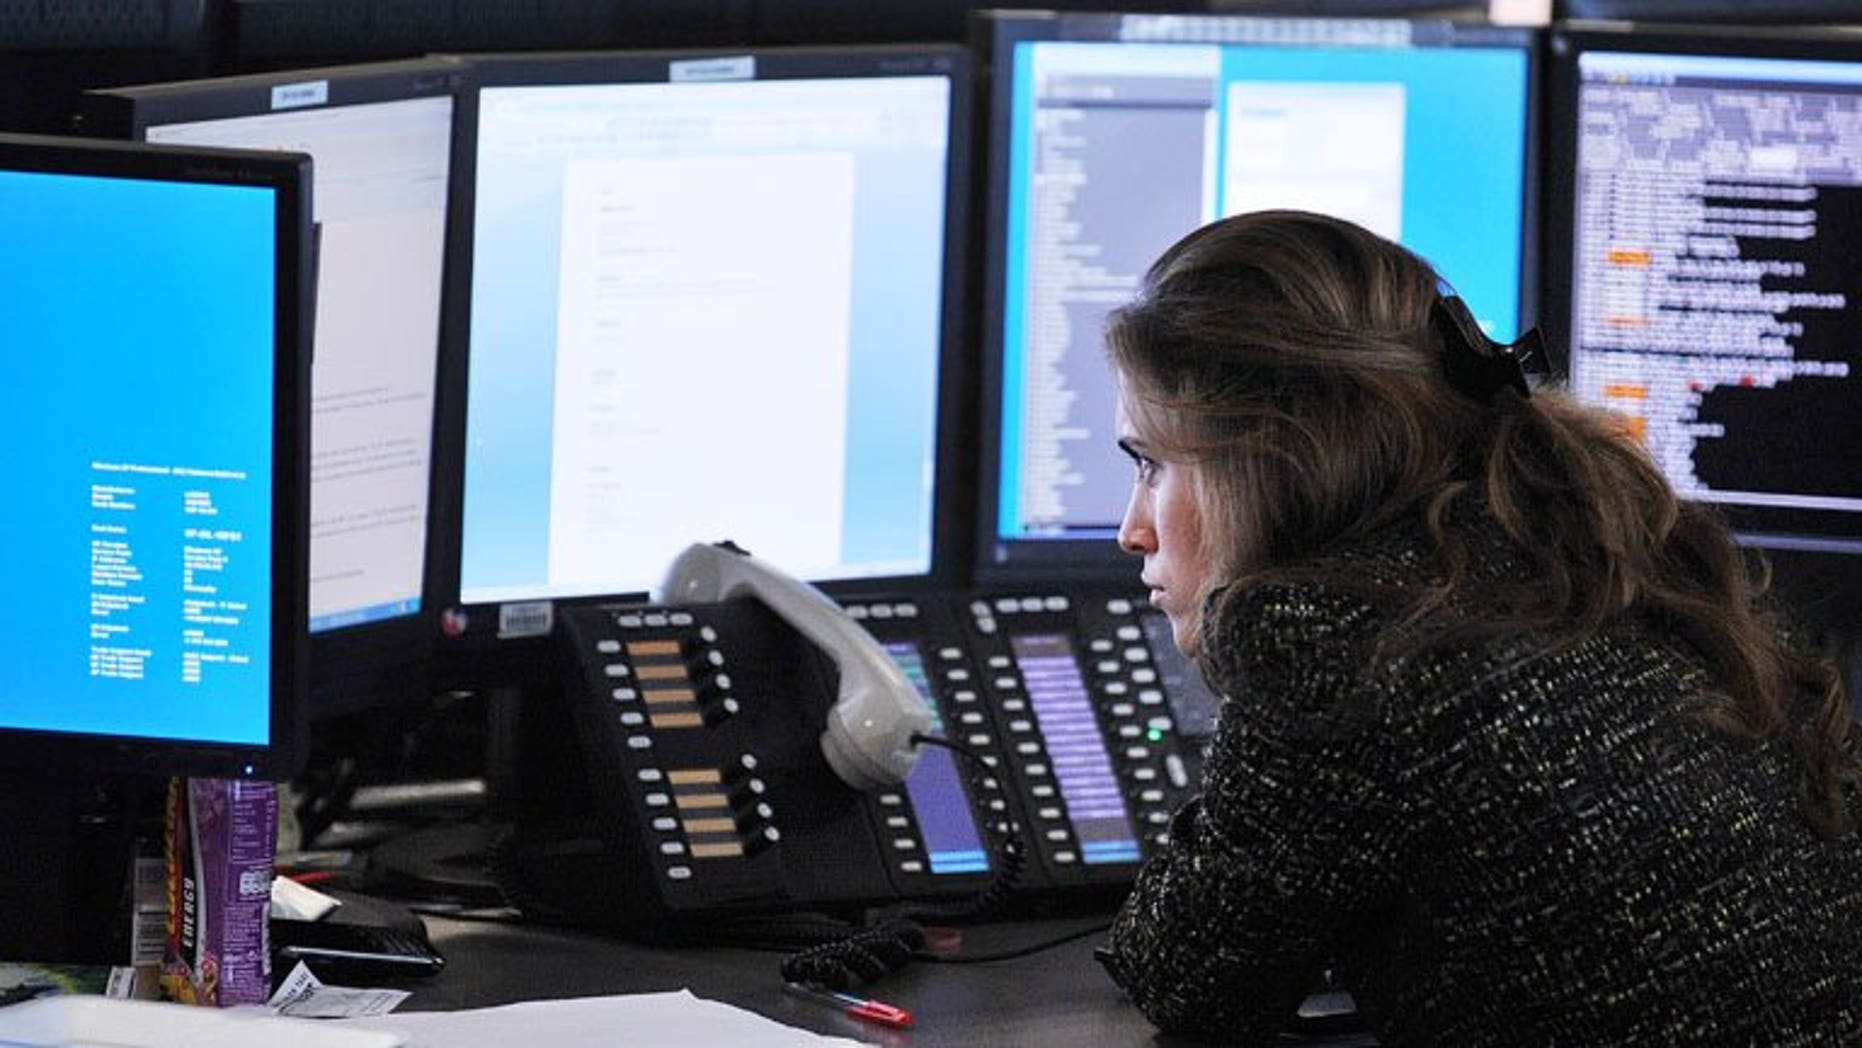 A broker monitors market movements at BGC Partners in London, on August 5, 2011. London shares closed lower as sentiment was hit by fresh fears over Syria and the possible withdrawal of US Federal Reserve stimulus.